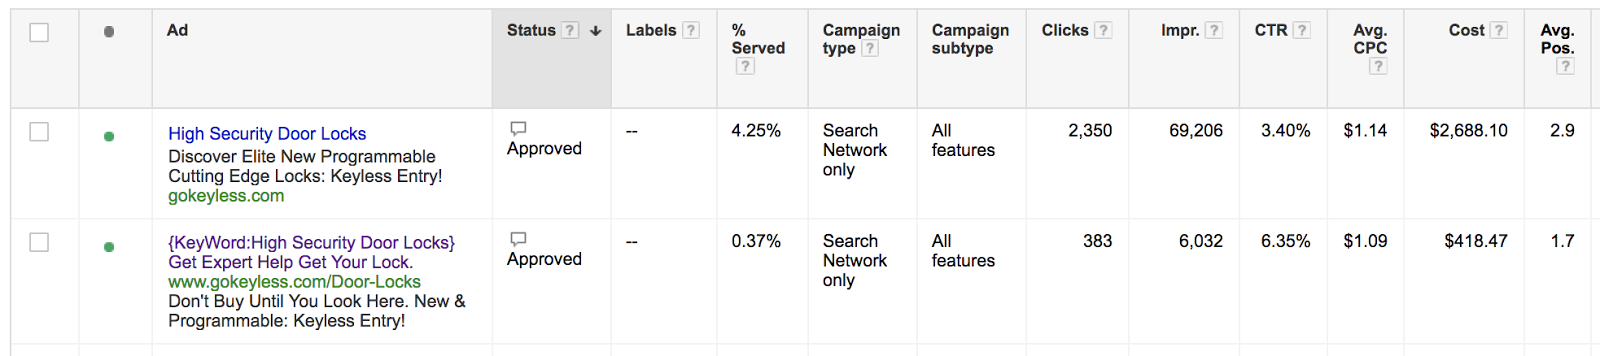 In the same ad group, we can see that the DKI ad not only has a higher CTR but lower CPC, saving money.